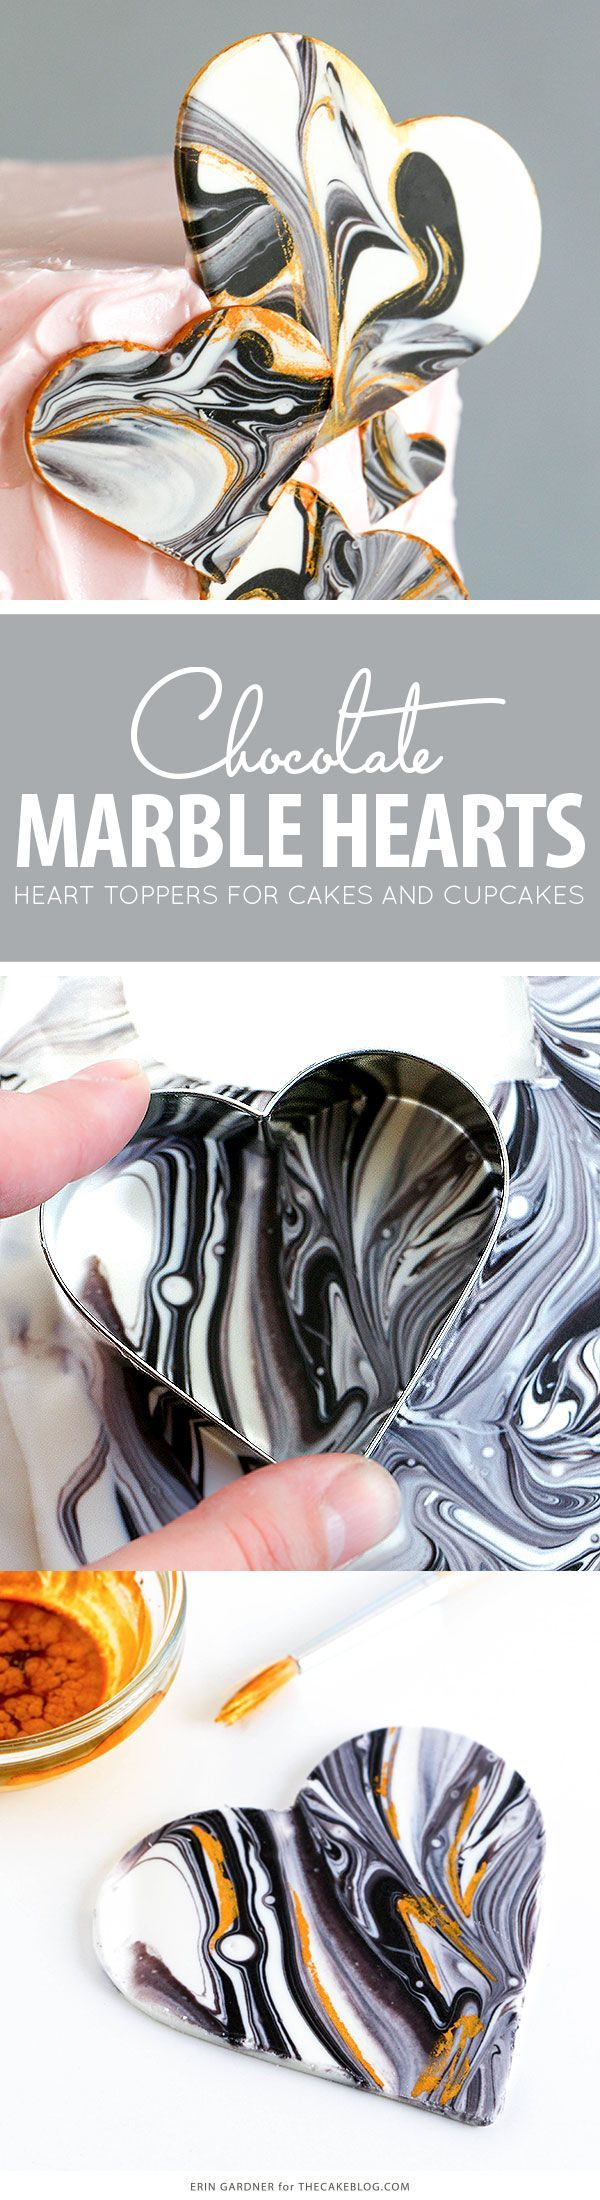 Marble Chocolate Hearts - how to make marbled heart toppers for cakes and cupcakes using chocolate coating and cookie cutters | by Erin Gardner for http://TheCakeBlog.com